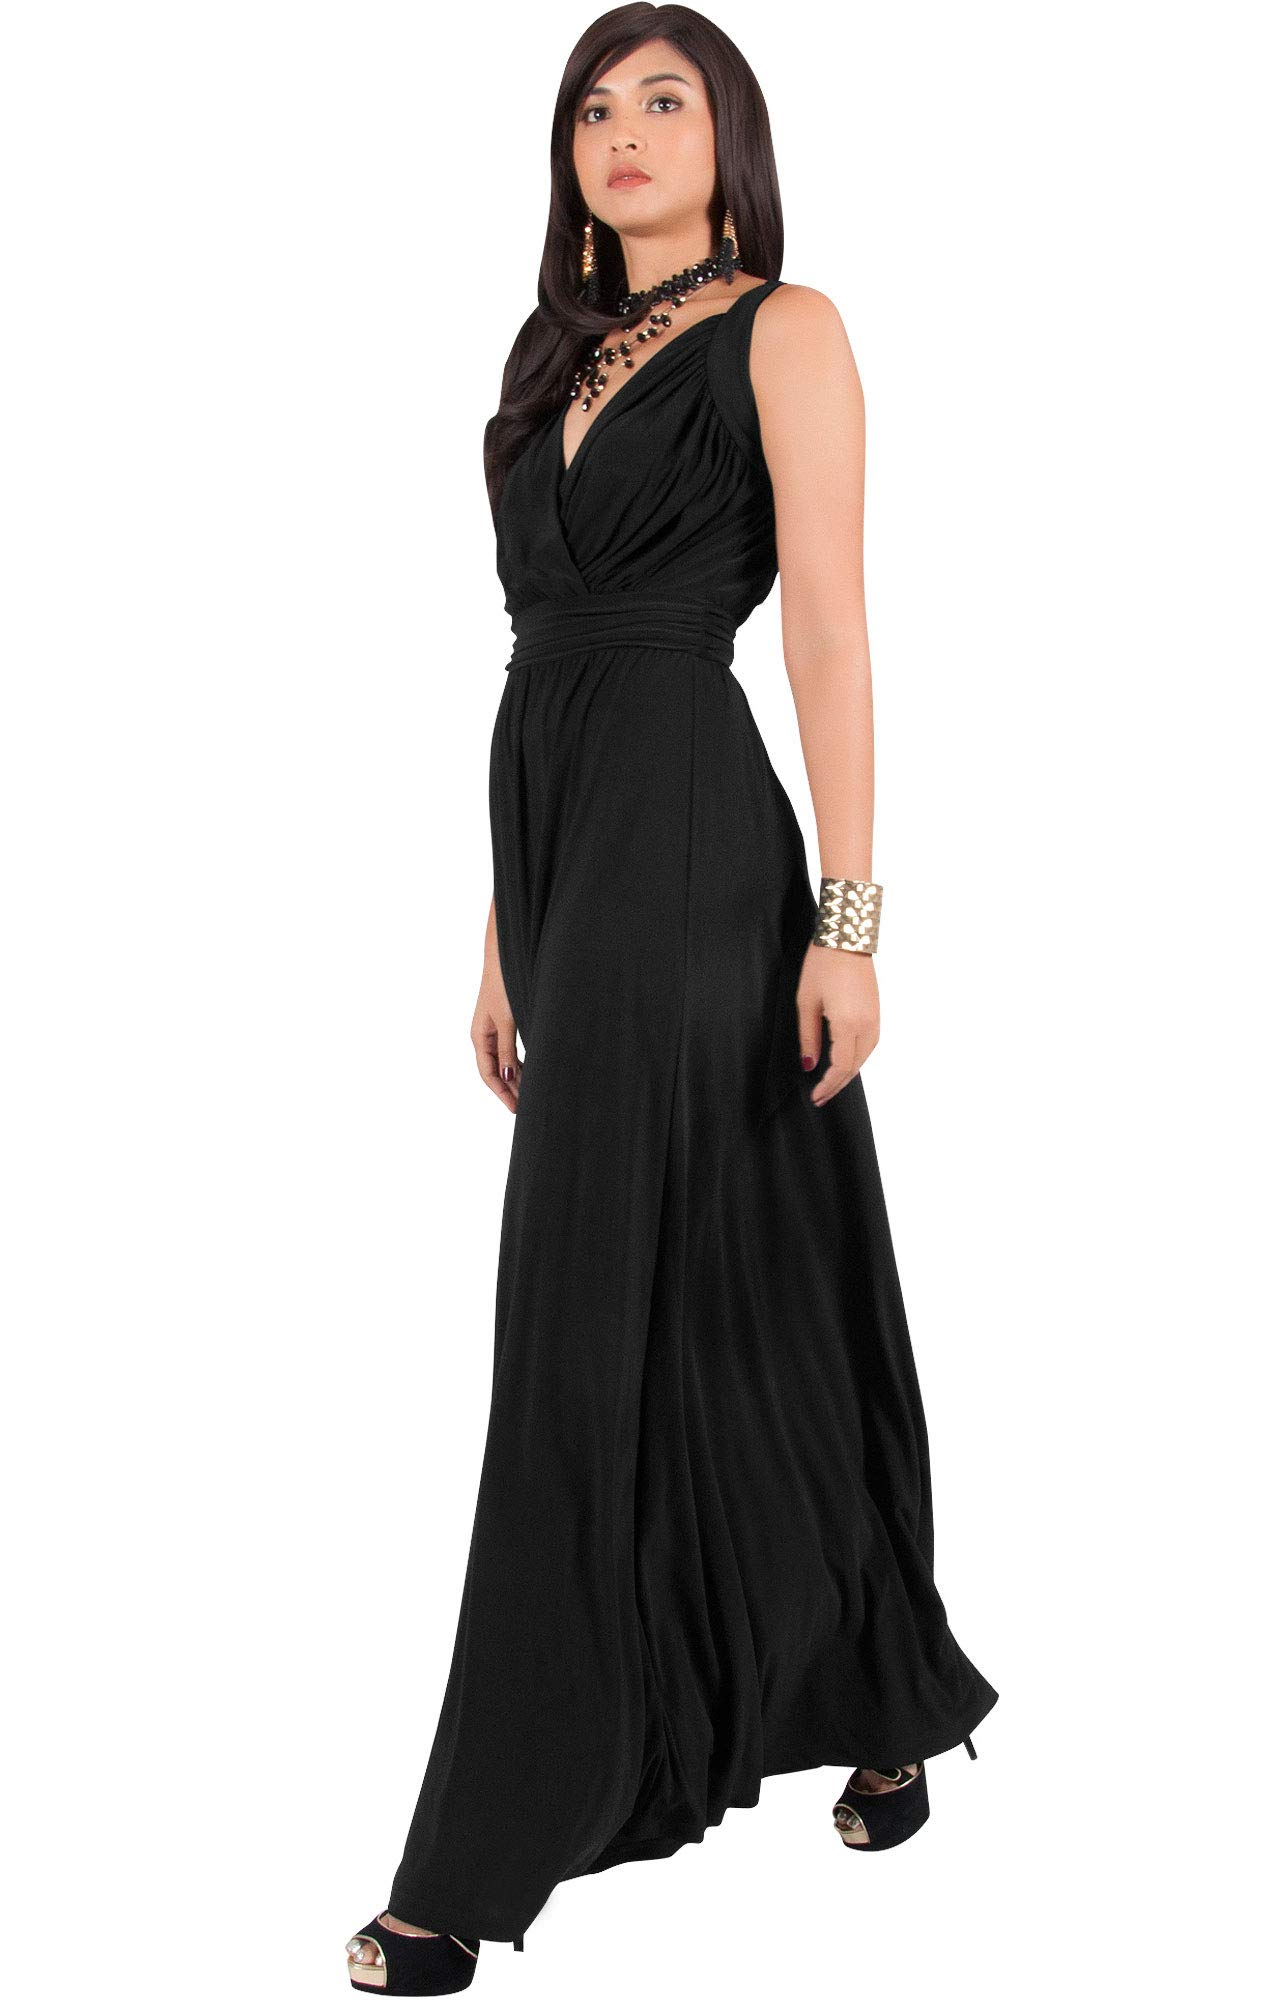 KOH KOH Womens Long Sleeveless Flowy Bridesmaids Cocktail Party Evening Formal Sexy Summer Wedding Guest Ball Prom Gown Gowns Maxi Dress Dresses, Black L 12-14 by KOH KOH (Image #5)